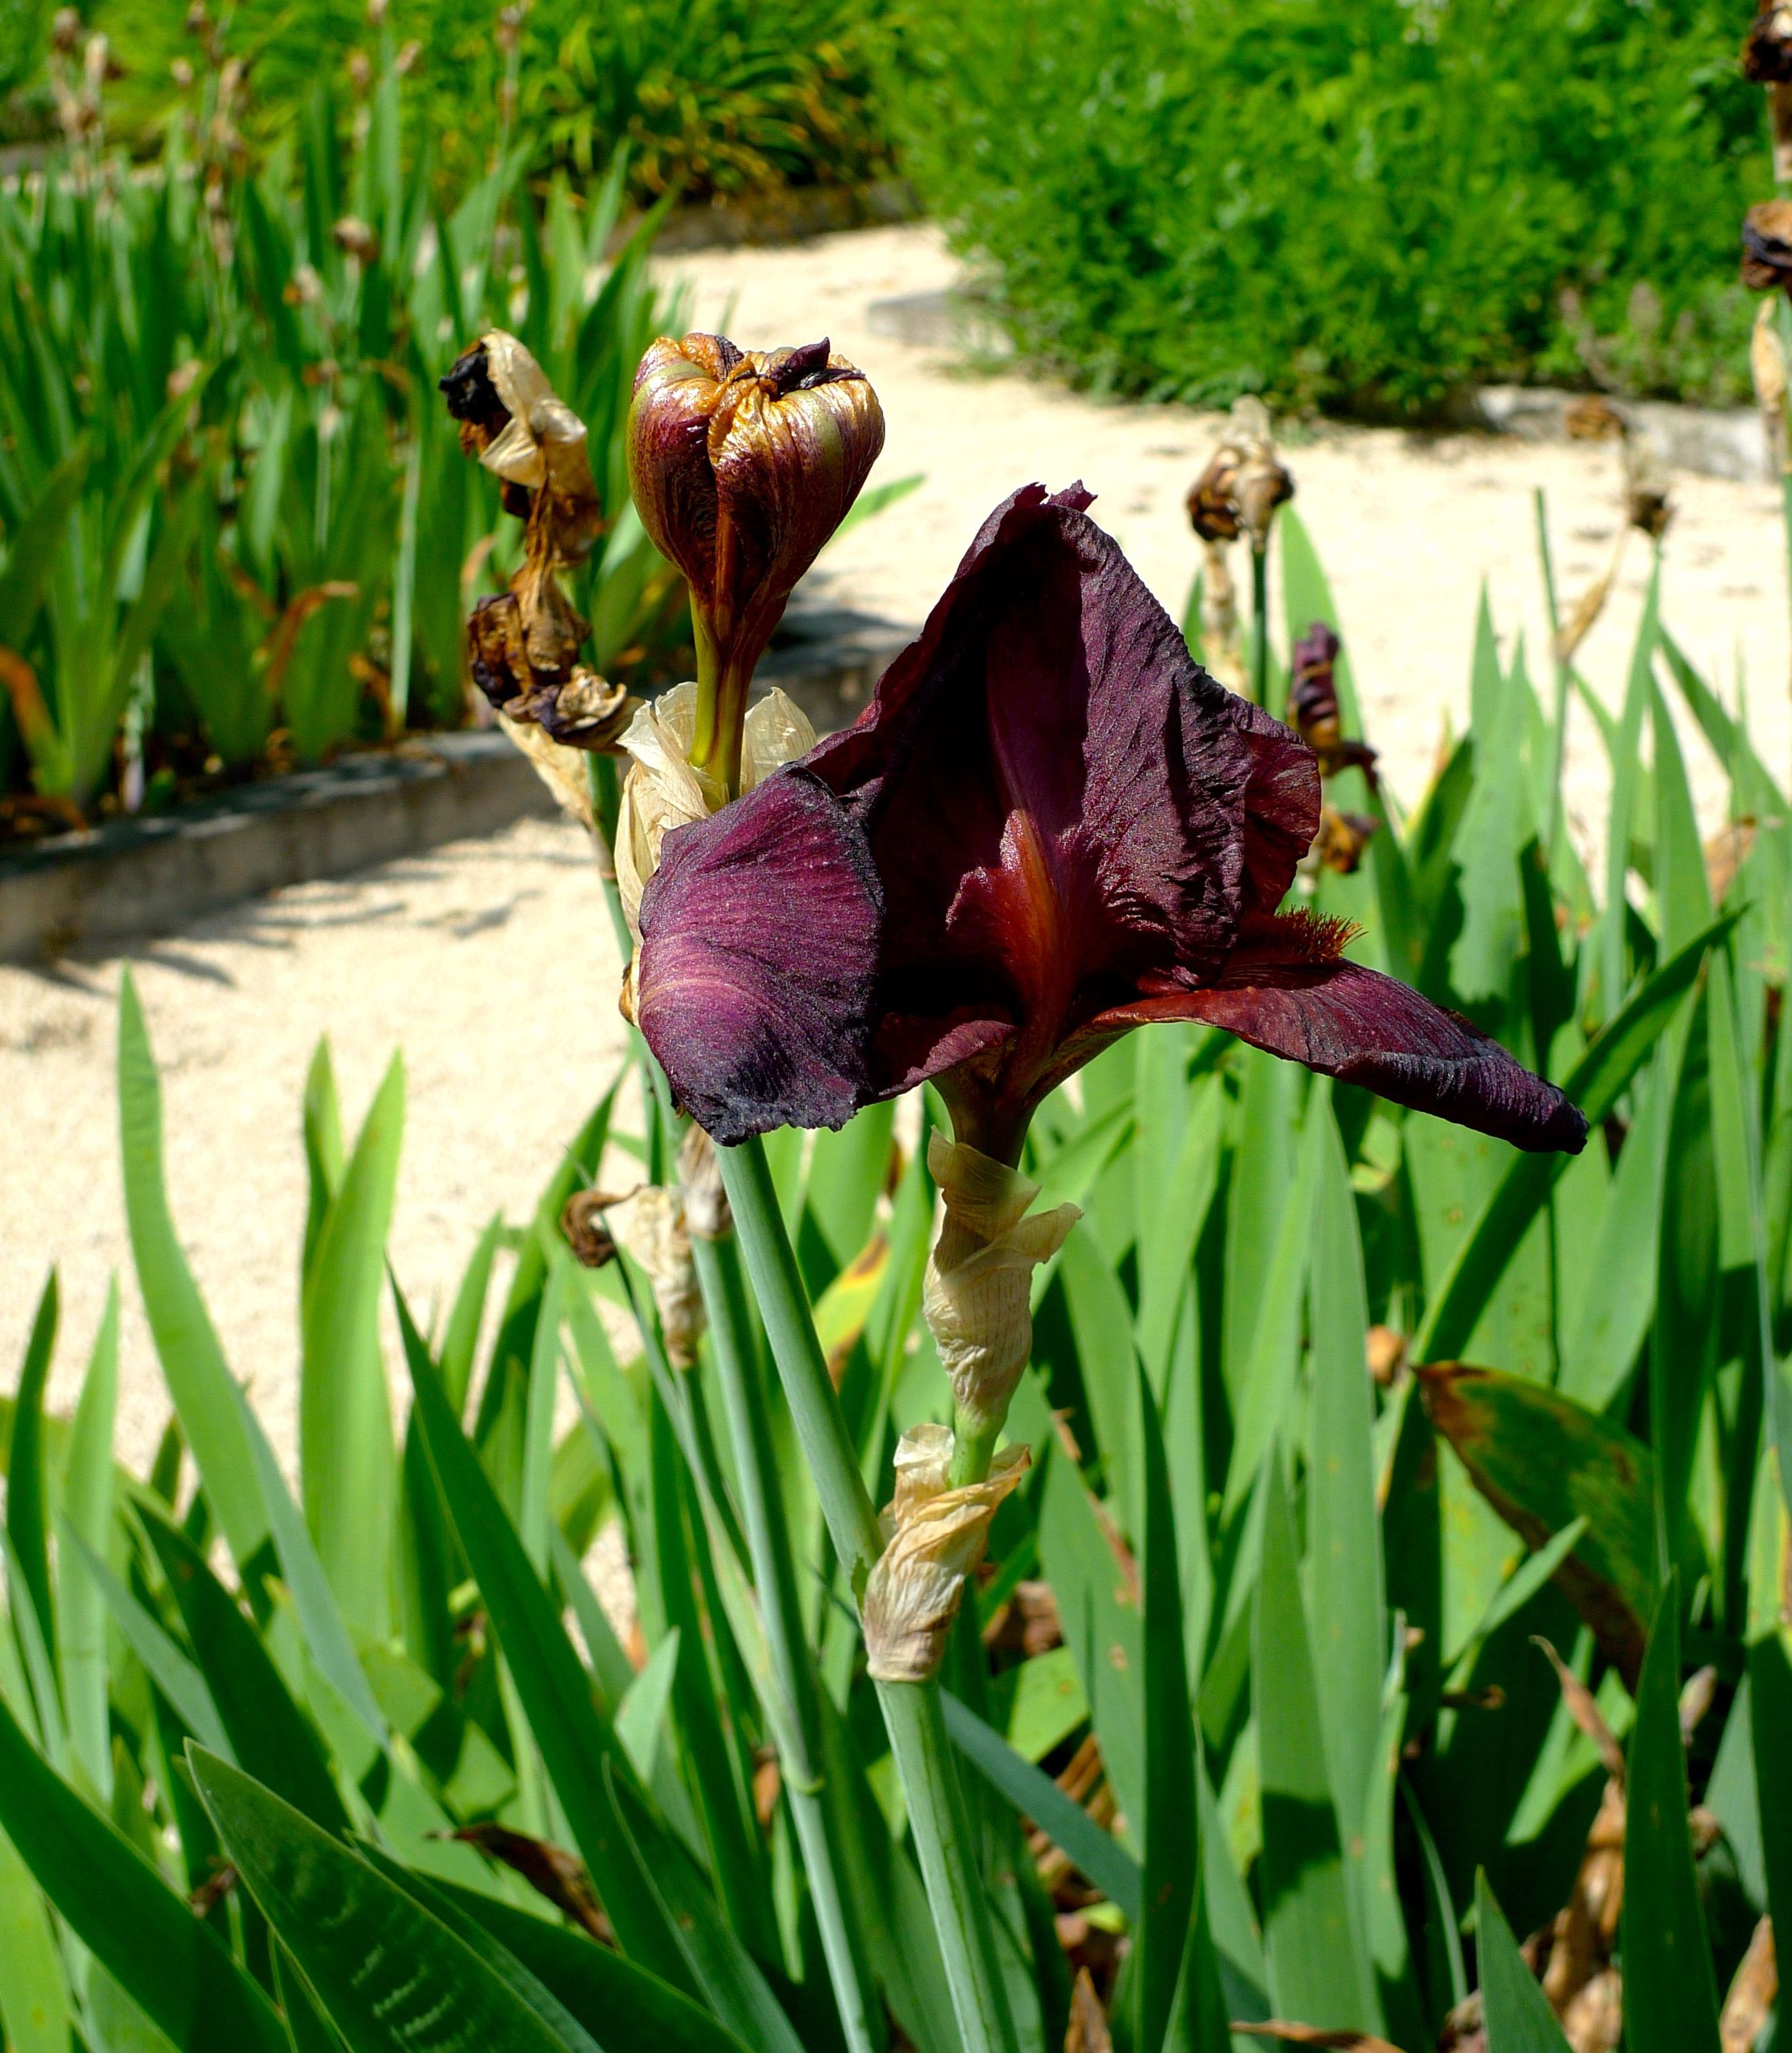 I did find some iris in flower though